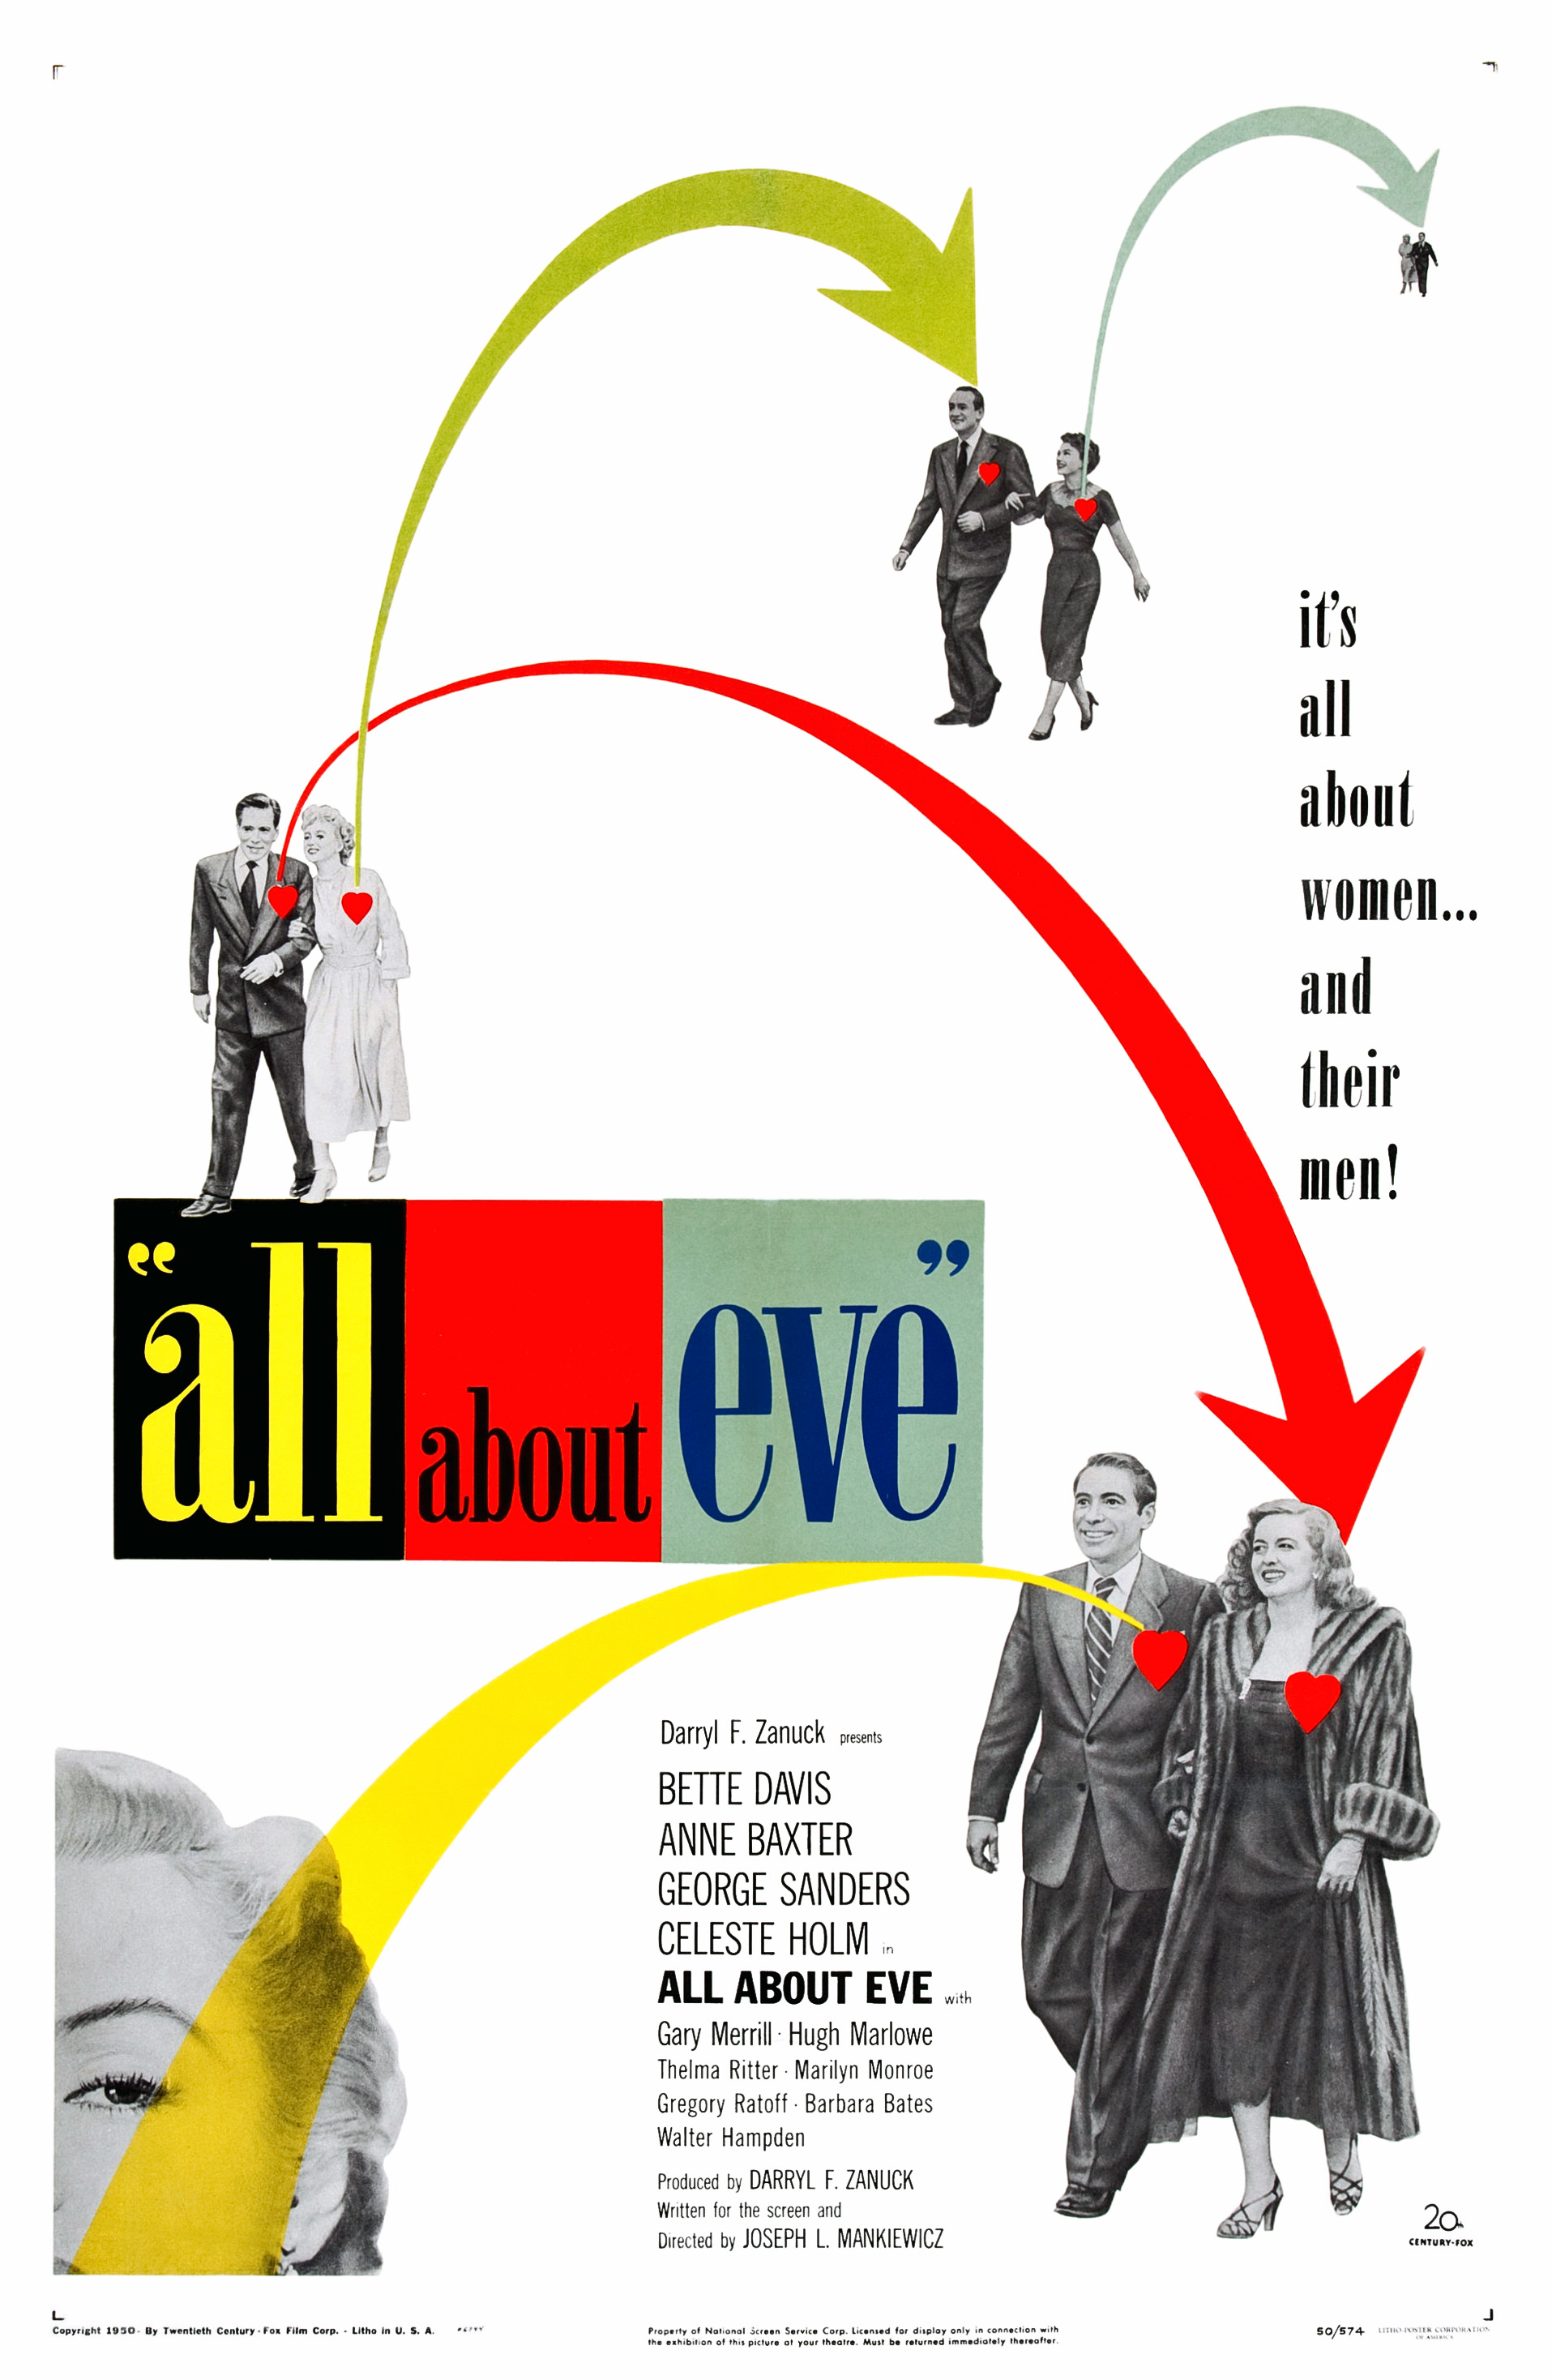 All About Eve - Wikipedia